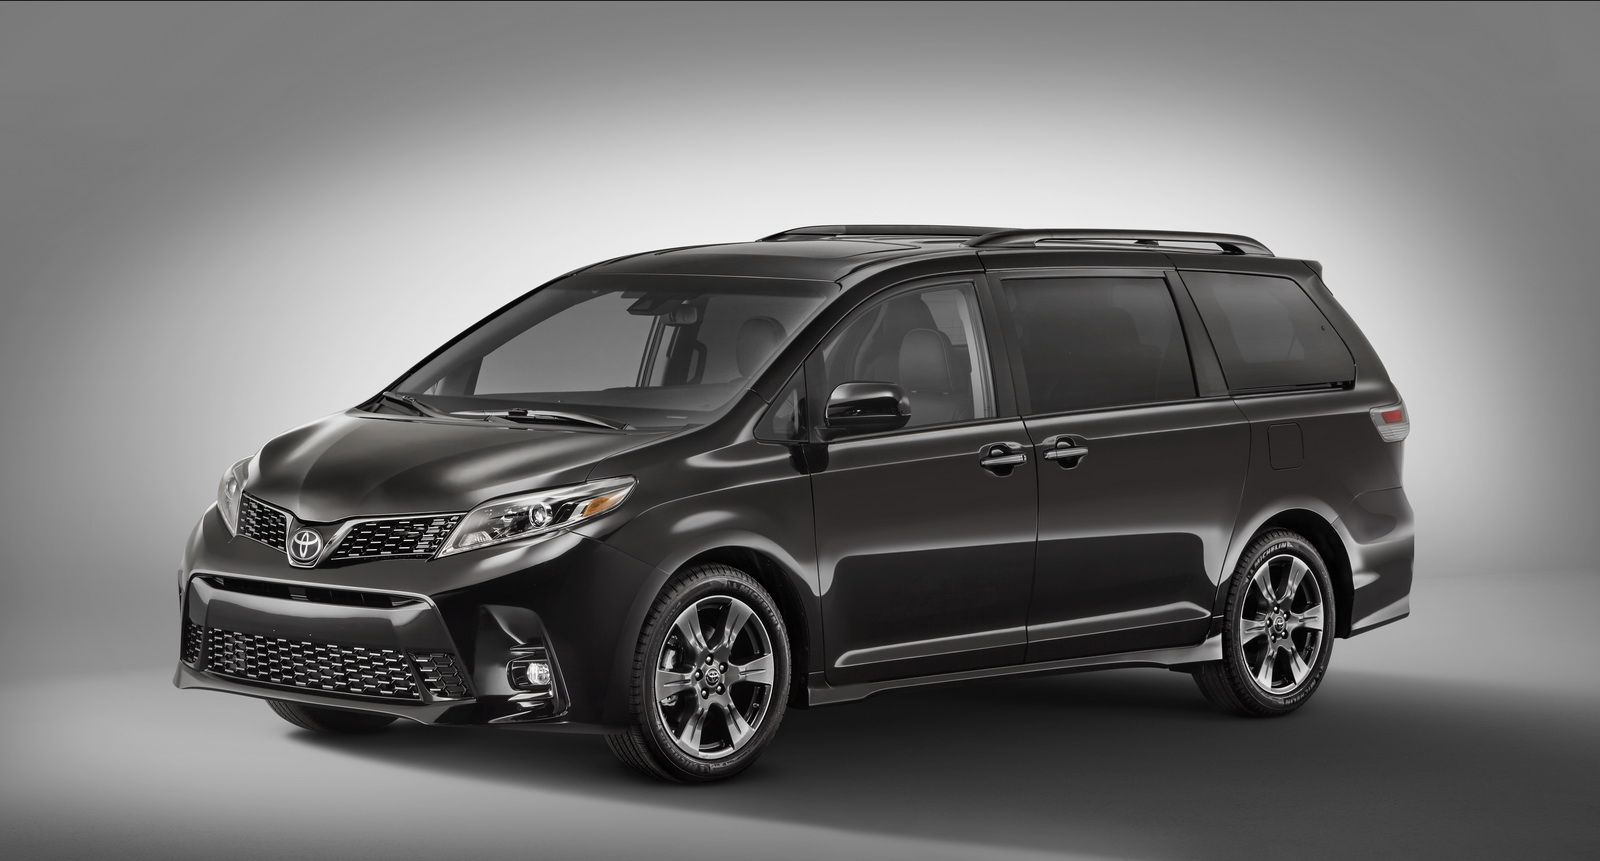 Toyota have introduced the facelifted sienna and yaris to the usa ahead of their official